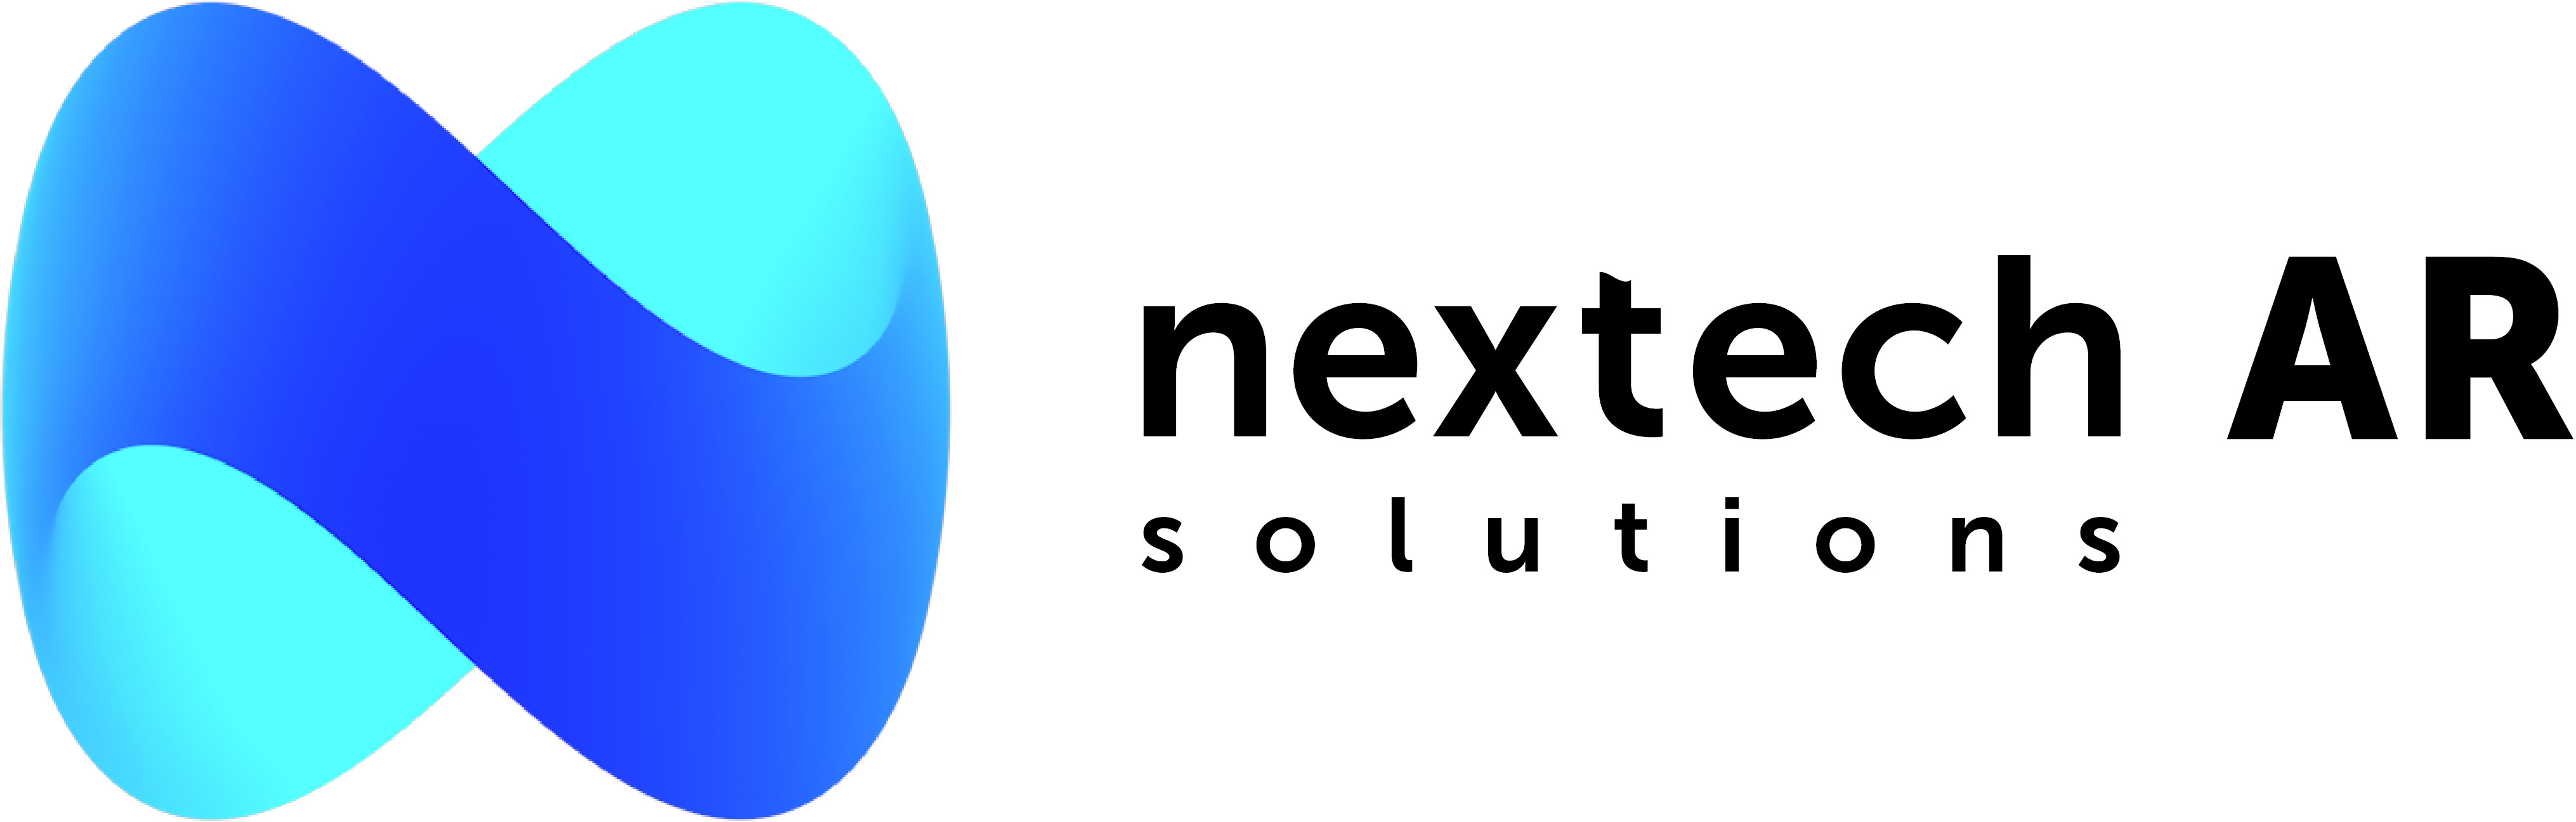 Nextech's InfernoAR Signs Annual License Contract With National Association of Medicaid Directors (NAMD)